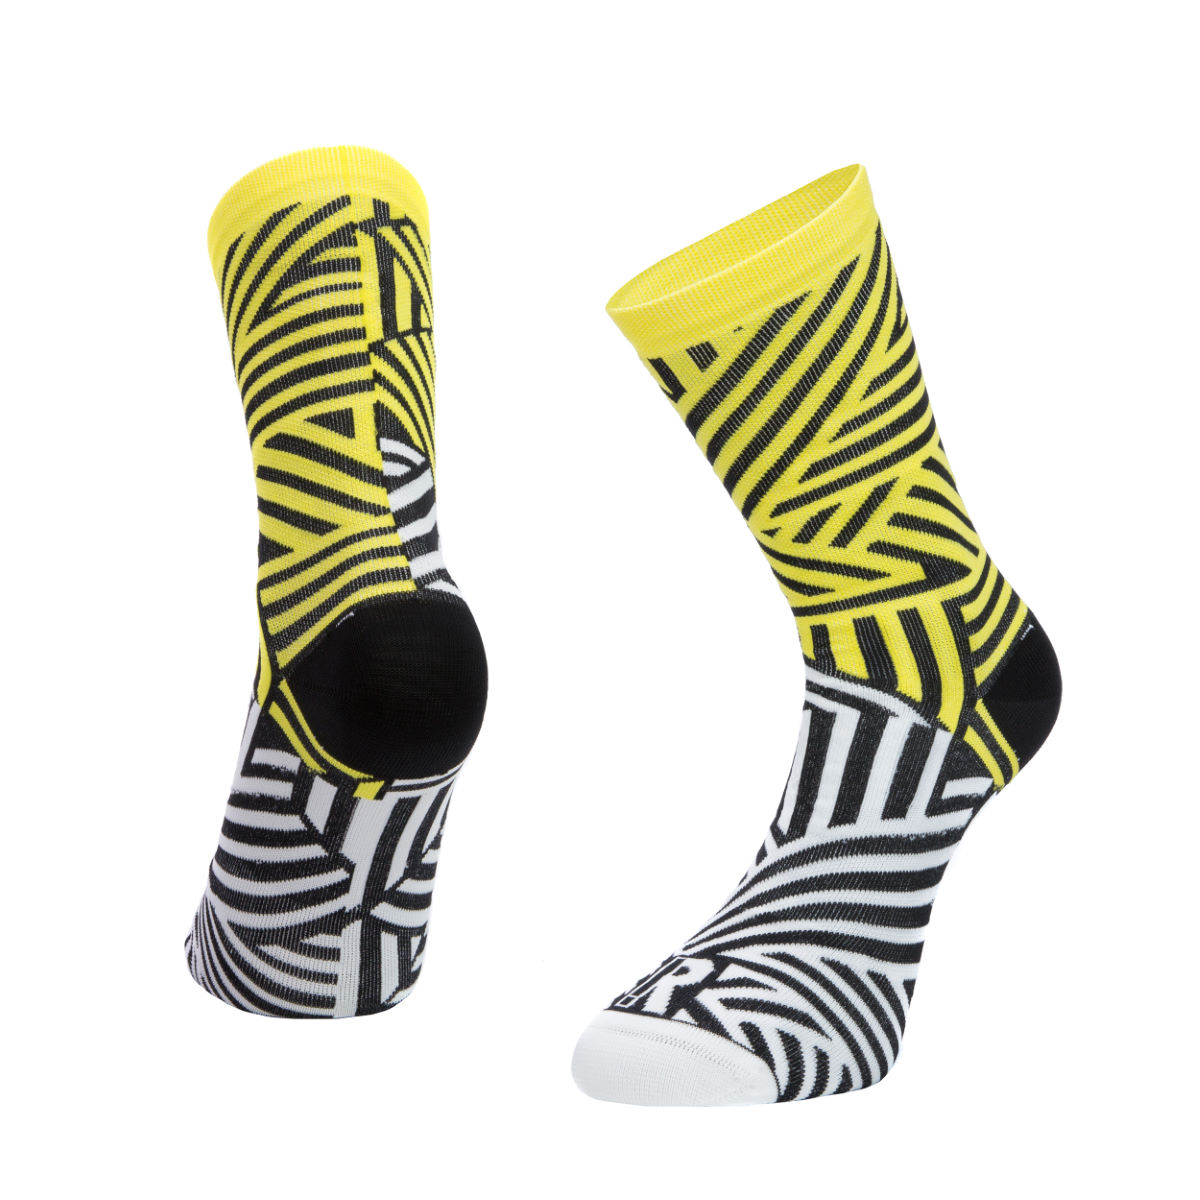 Ratio Dash 16cm Sock (Yellow) - Calcetines